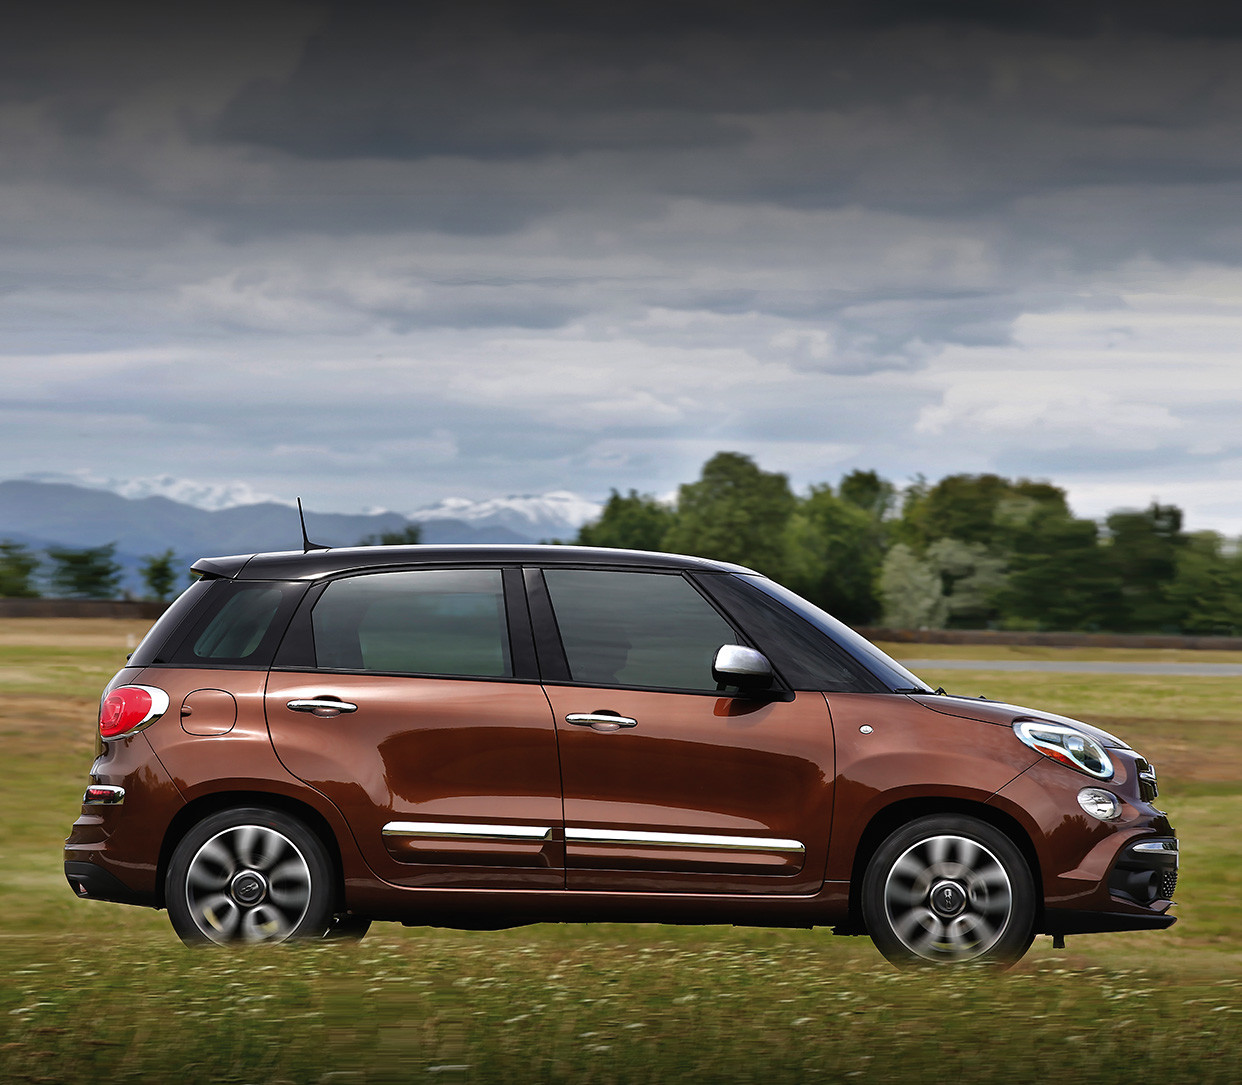 Side view of the 2020 Fiat 500L being driven on a country road through plains